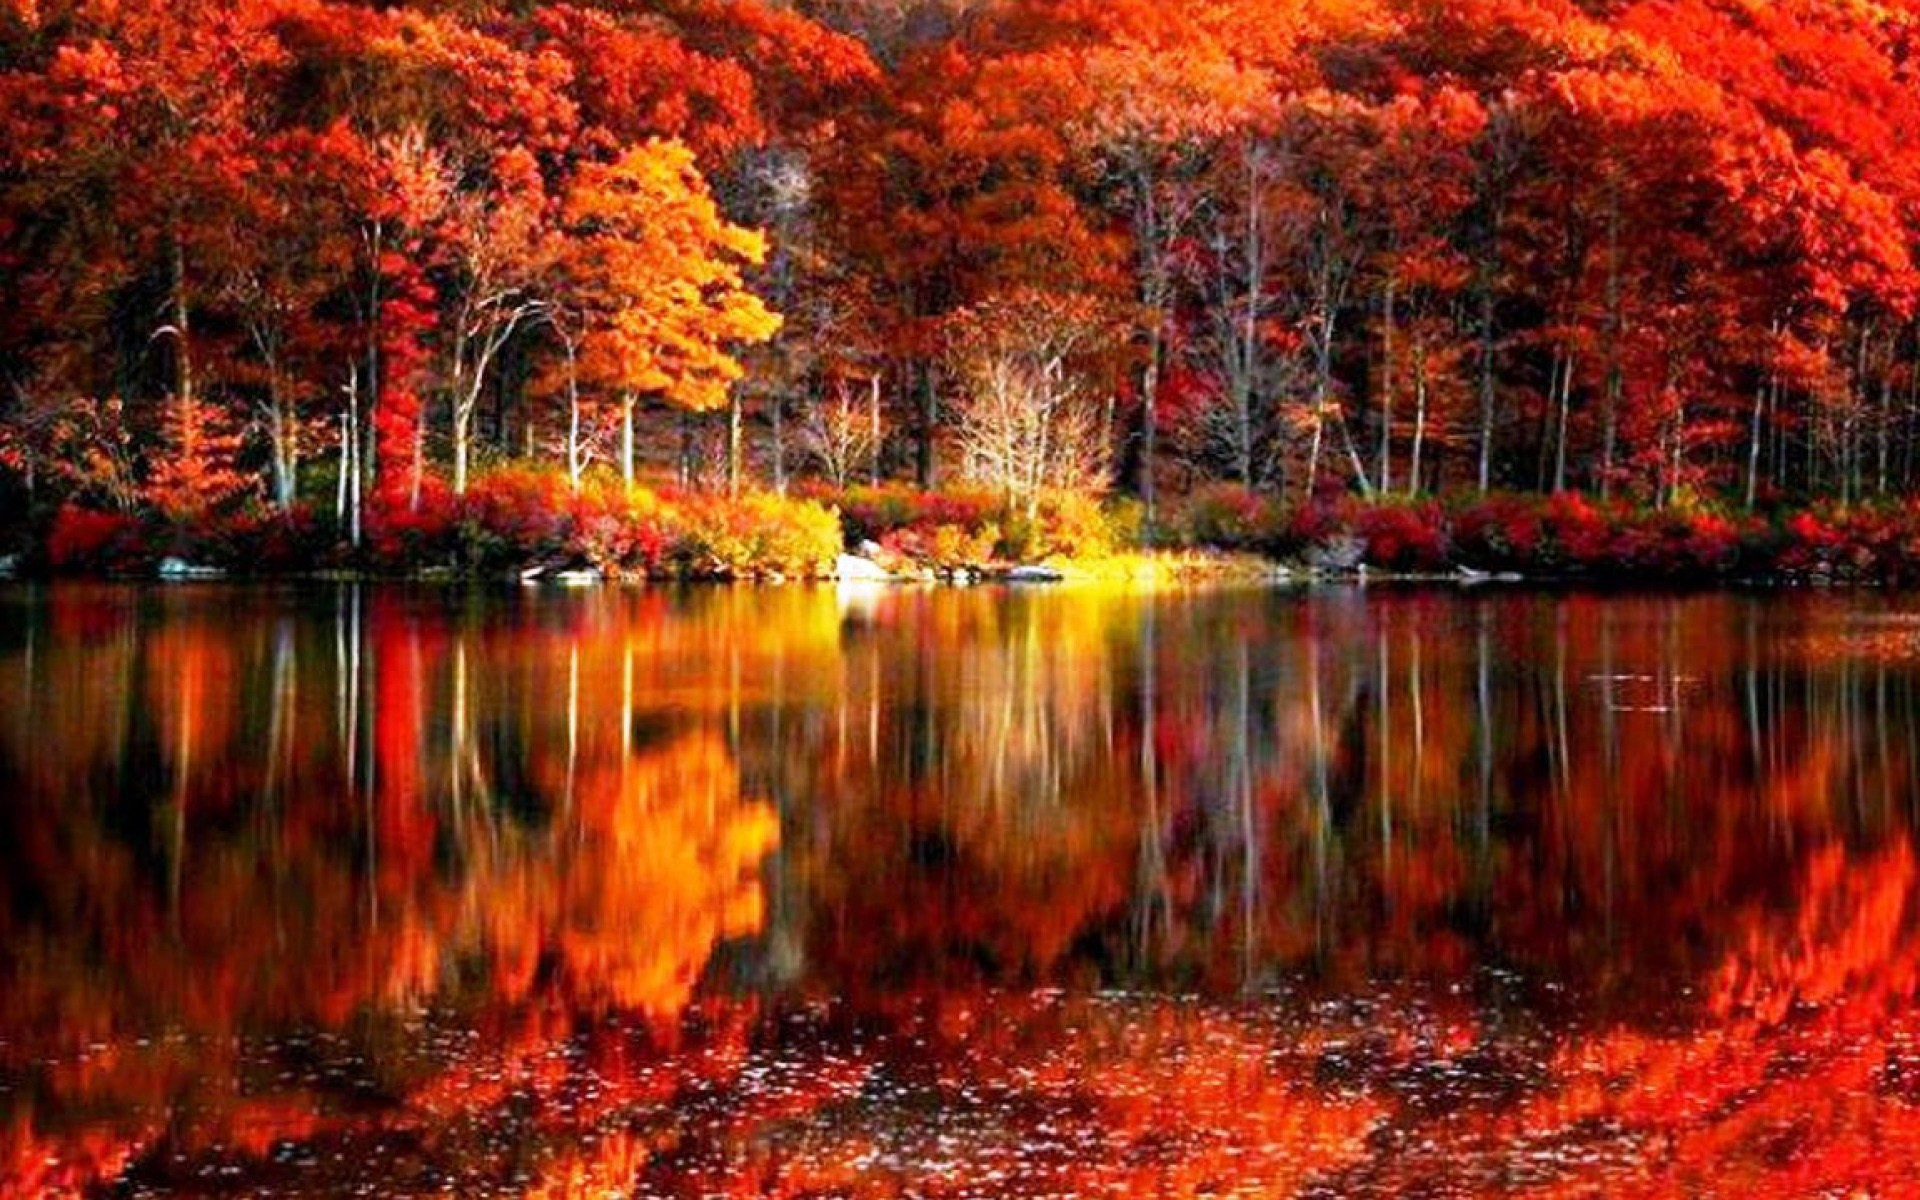 1024×768 px; Autumn Scenery Wallpapers, | Wallpapers PC Gallery